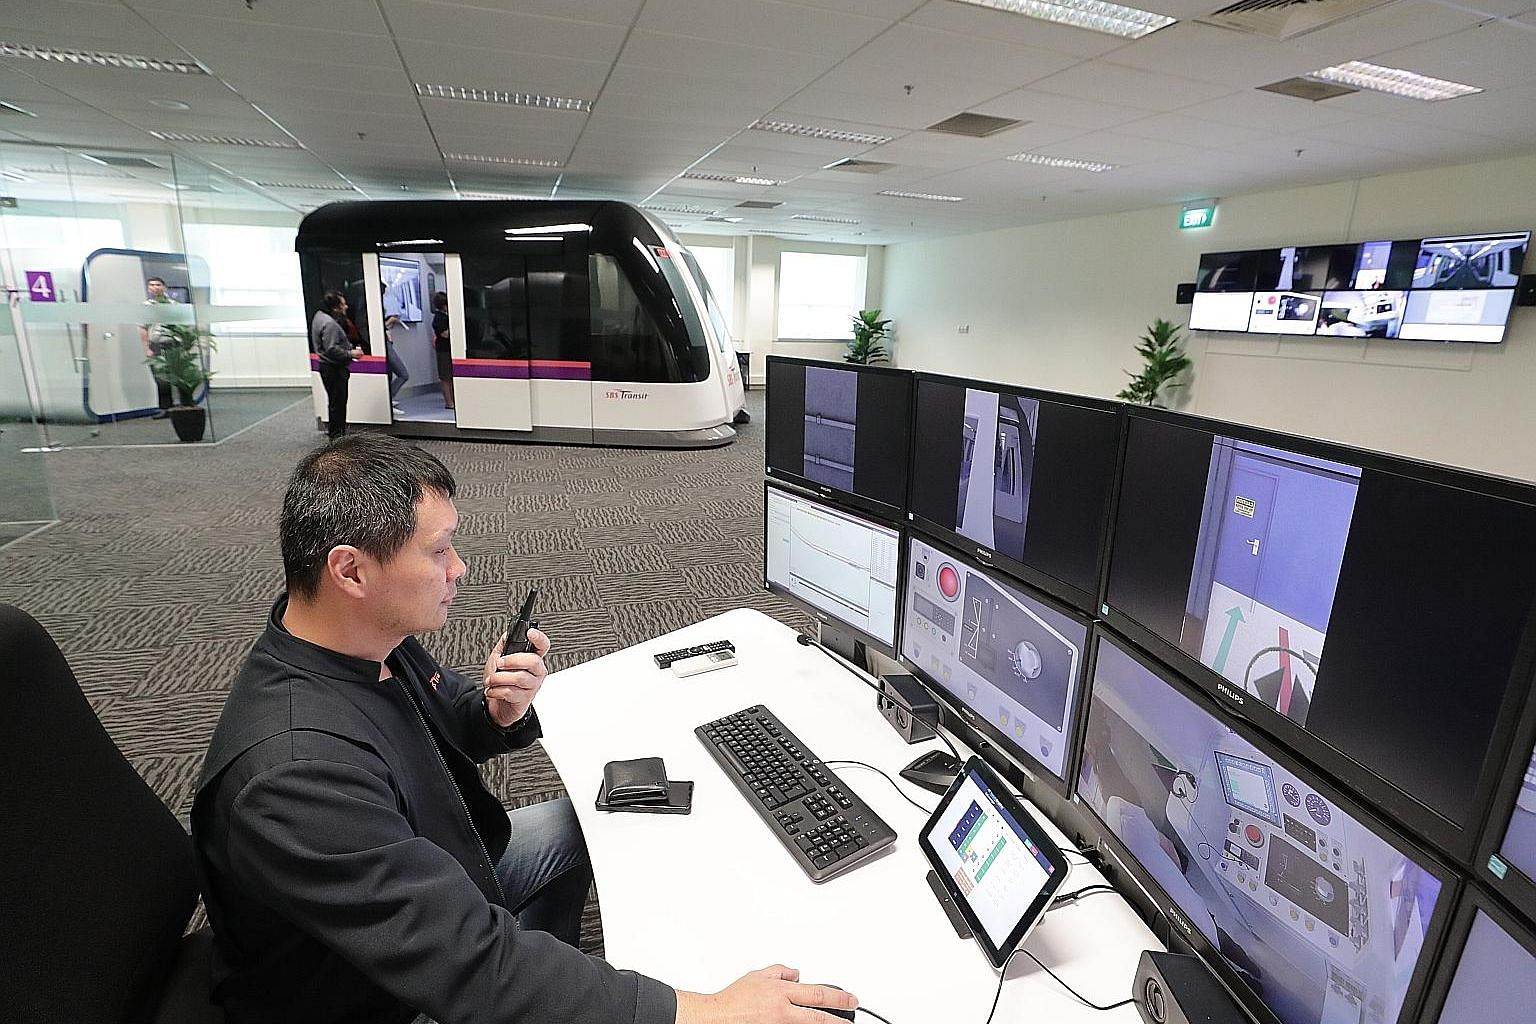 SBS Transit trainer Renzo Chua, 48, conducting training with the help of a train driving simulator for drivers, in order to prepare them for emergency situations on the North East Line or Downtown Line. The simulator is among initiatives aimed at boo